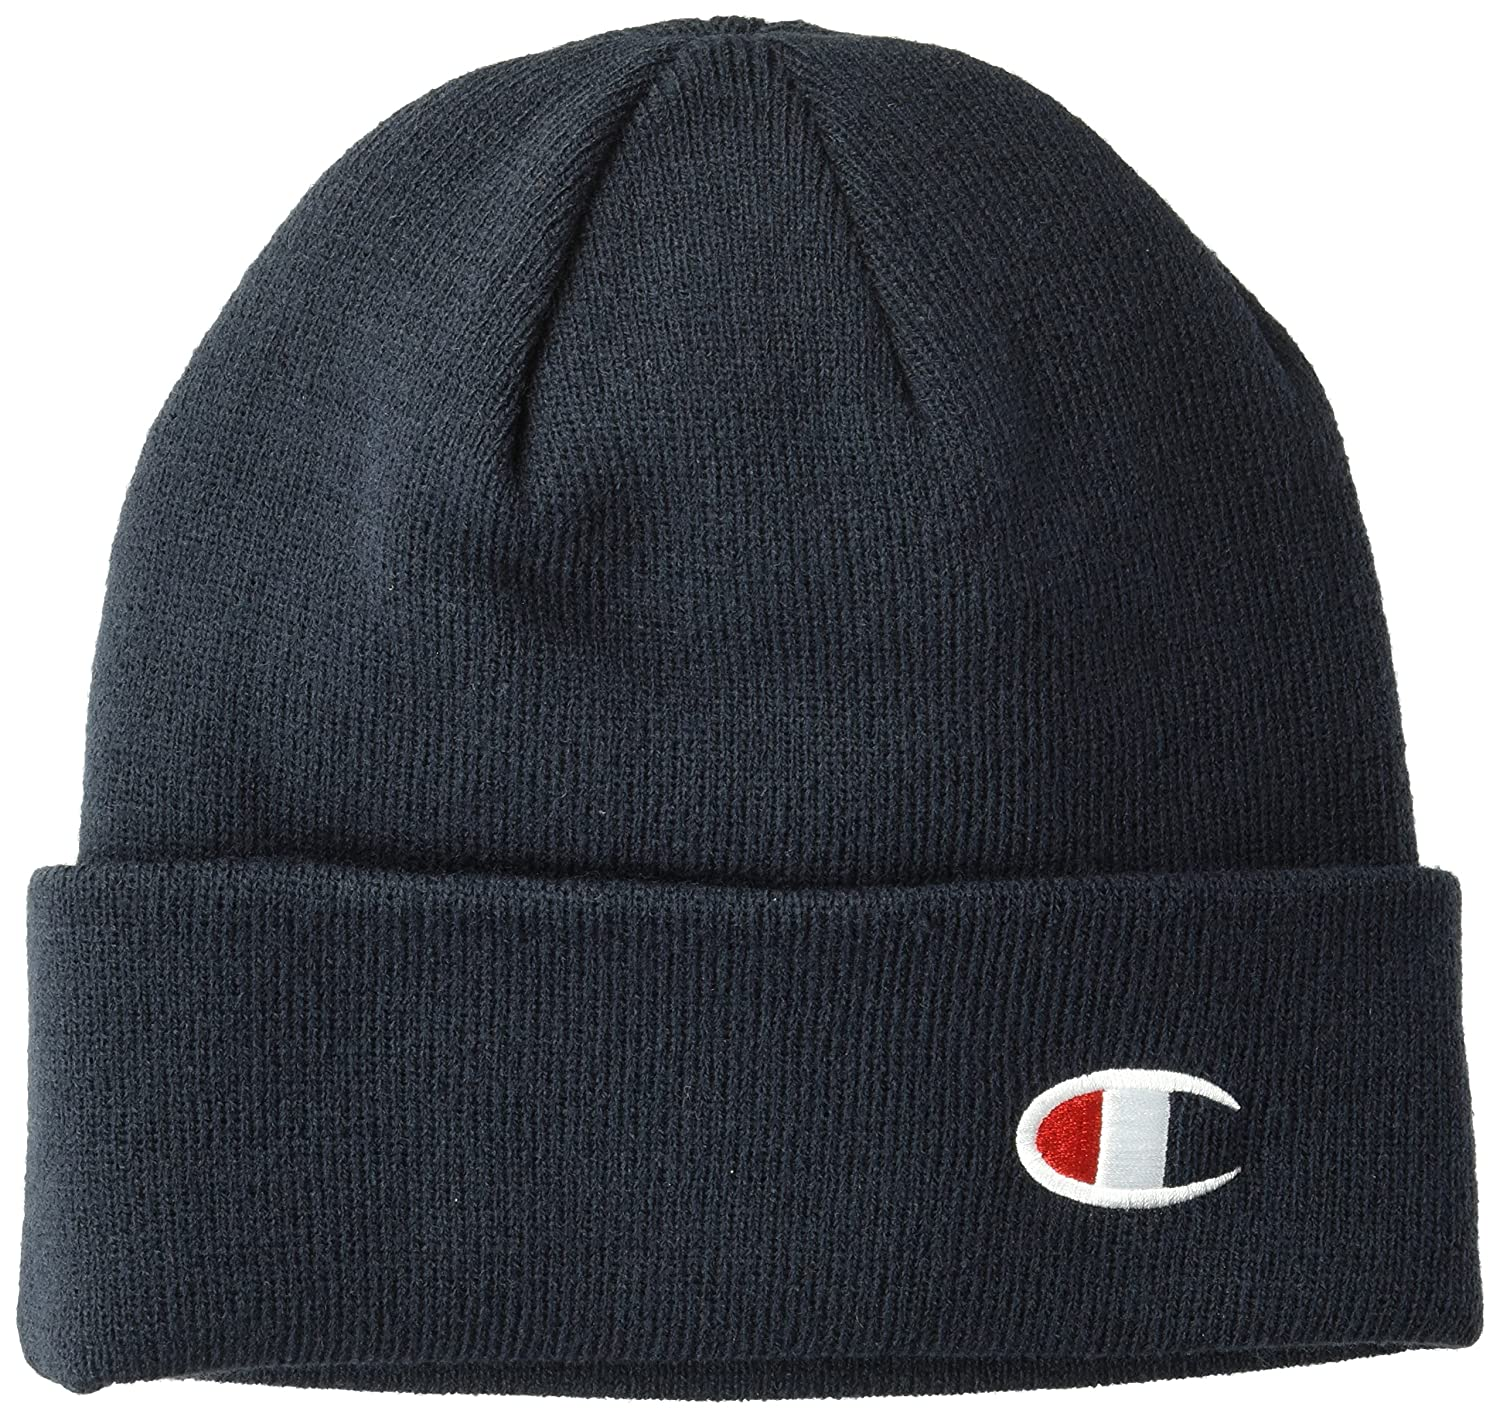 7e6a864d9 Champion LIFE Men's Beanie